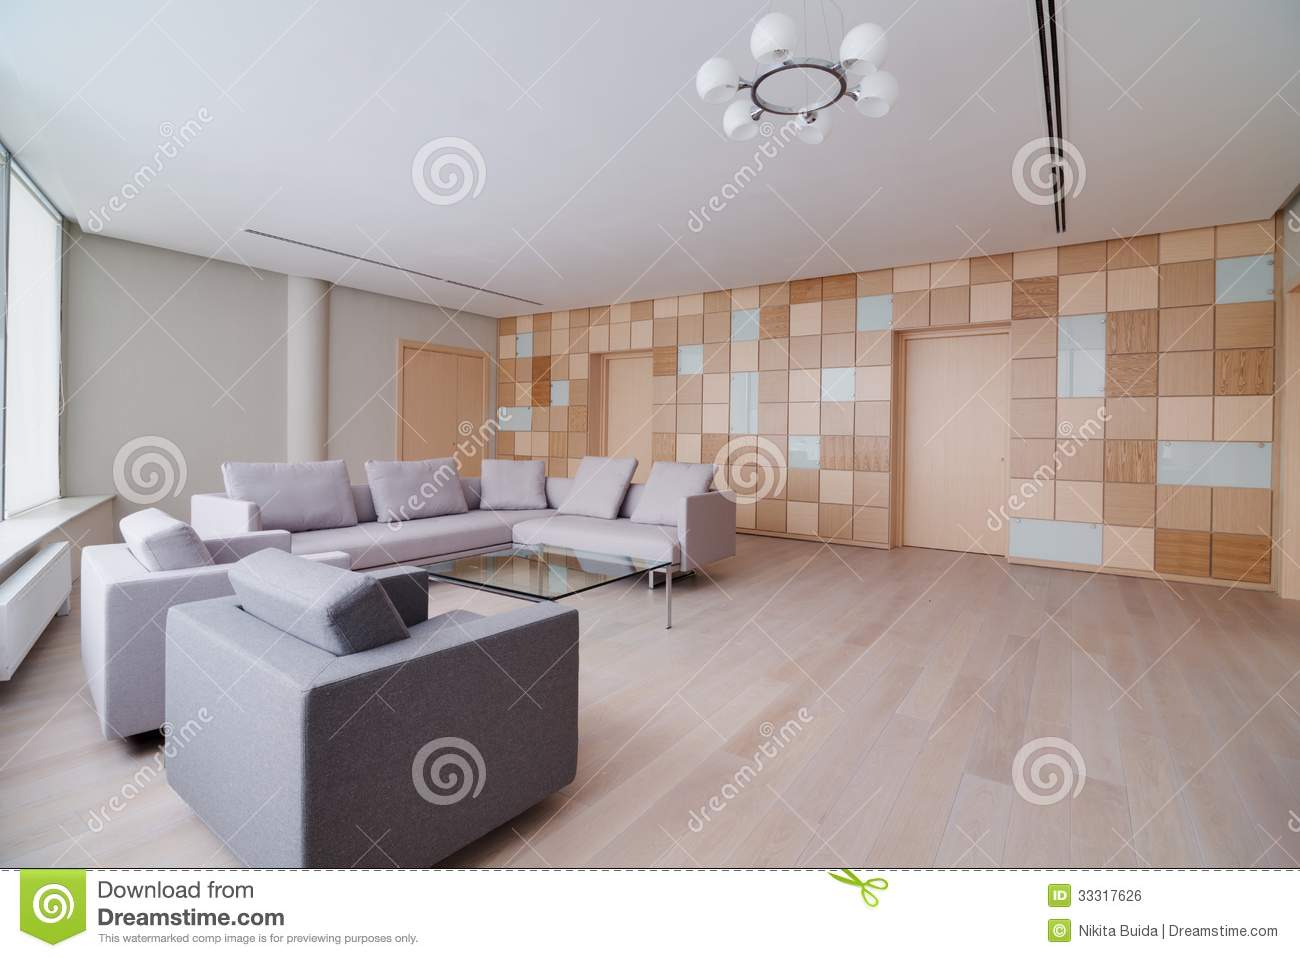 Modern office building interior royalty free stock image for Modern office building interior